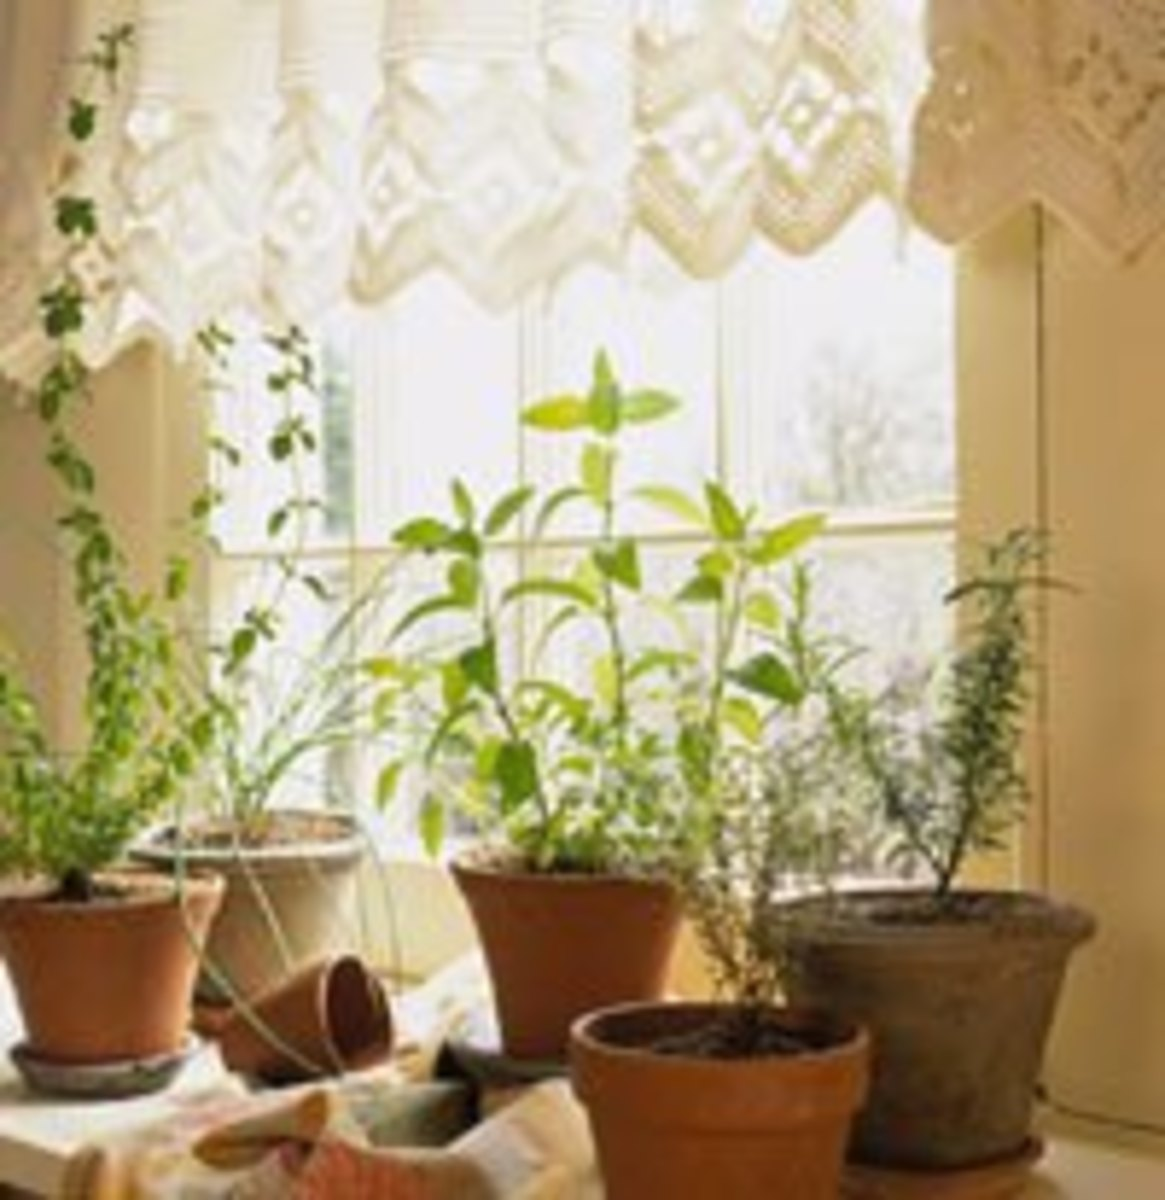 You can easily grow a great indoor herb garden in front of a south facing window.